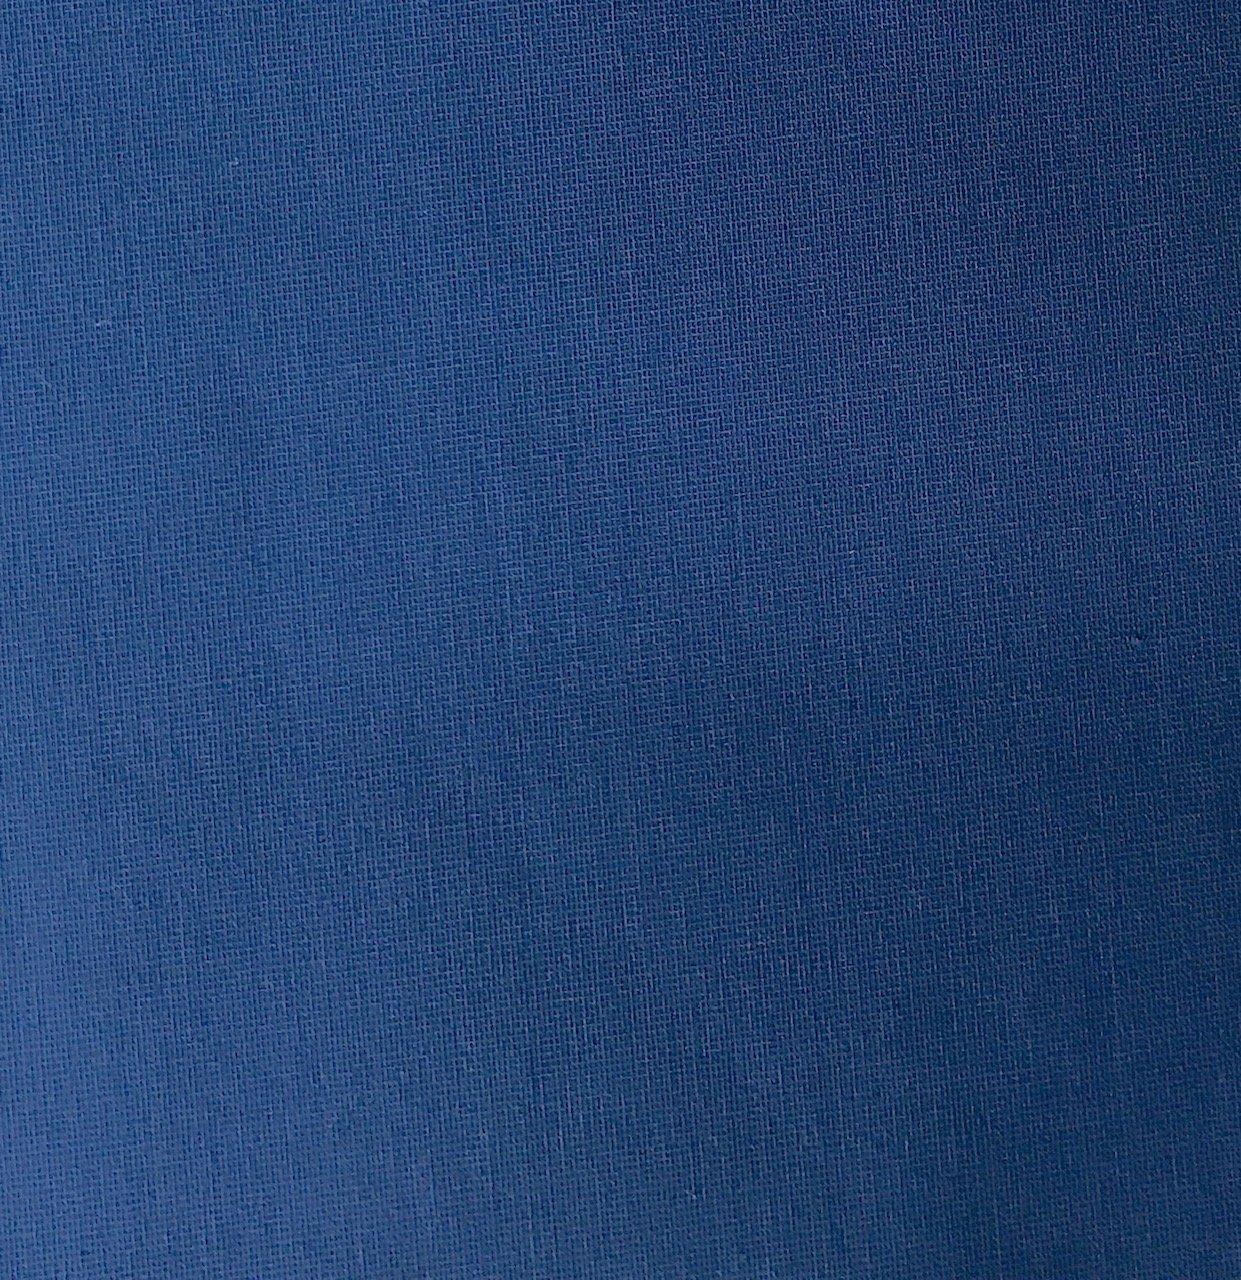 Polyester face/Pile Velour Back w/stretch- Basic Blue